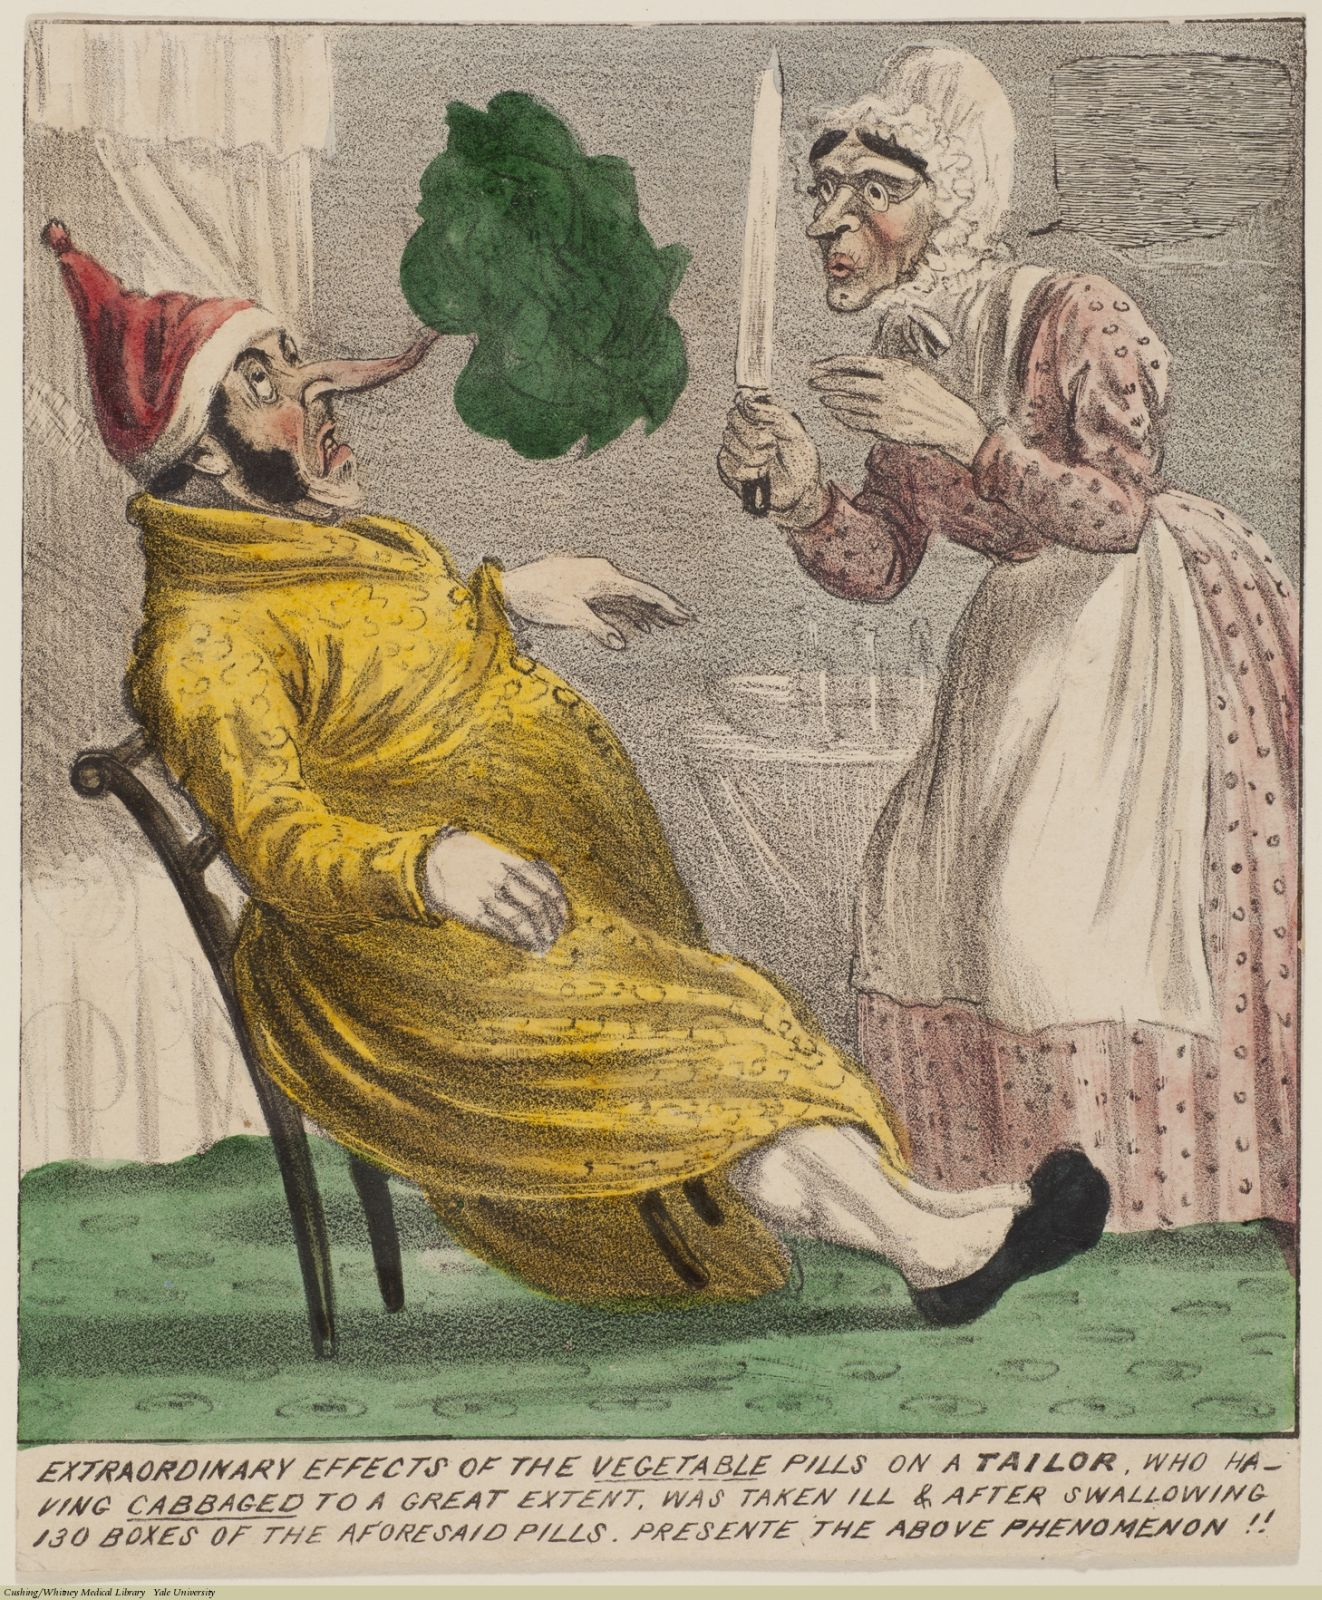 Extraordinary Effects Of The Vegetable Pills On A Tailor... Anonymous, Lithograph, coloured. Subject: Proprietary Remedies, James Morison, Morison's Pills.